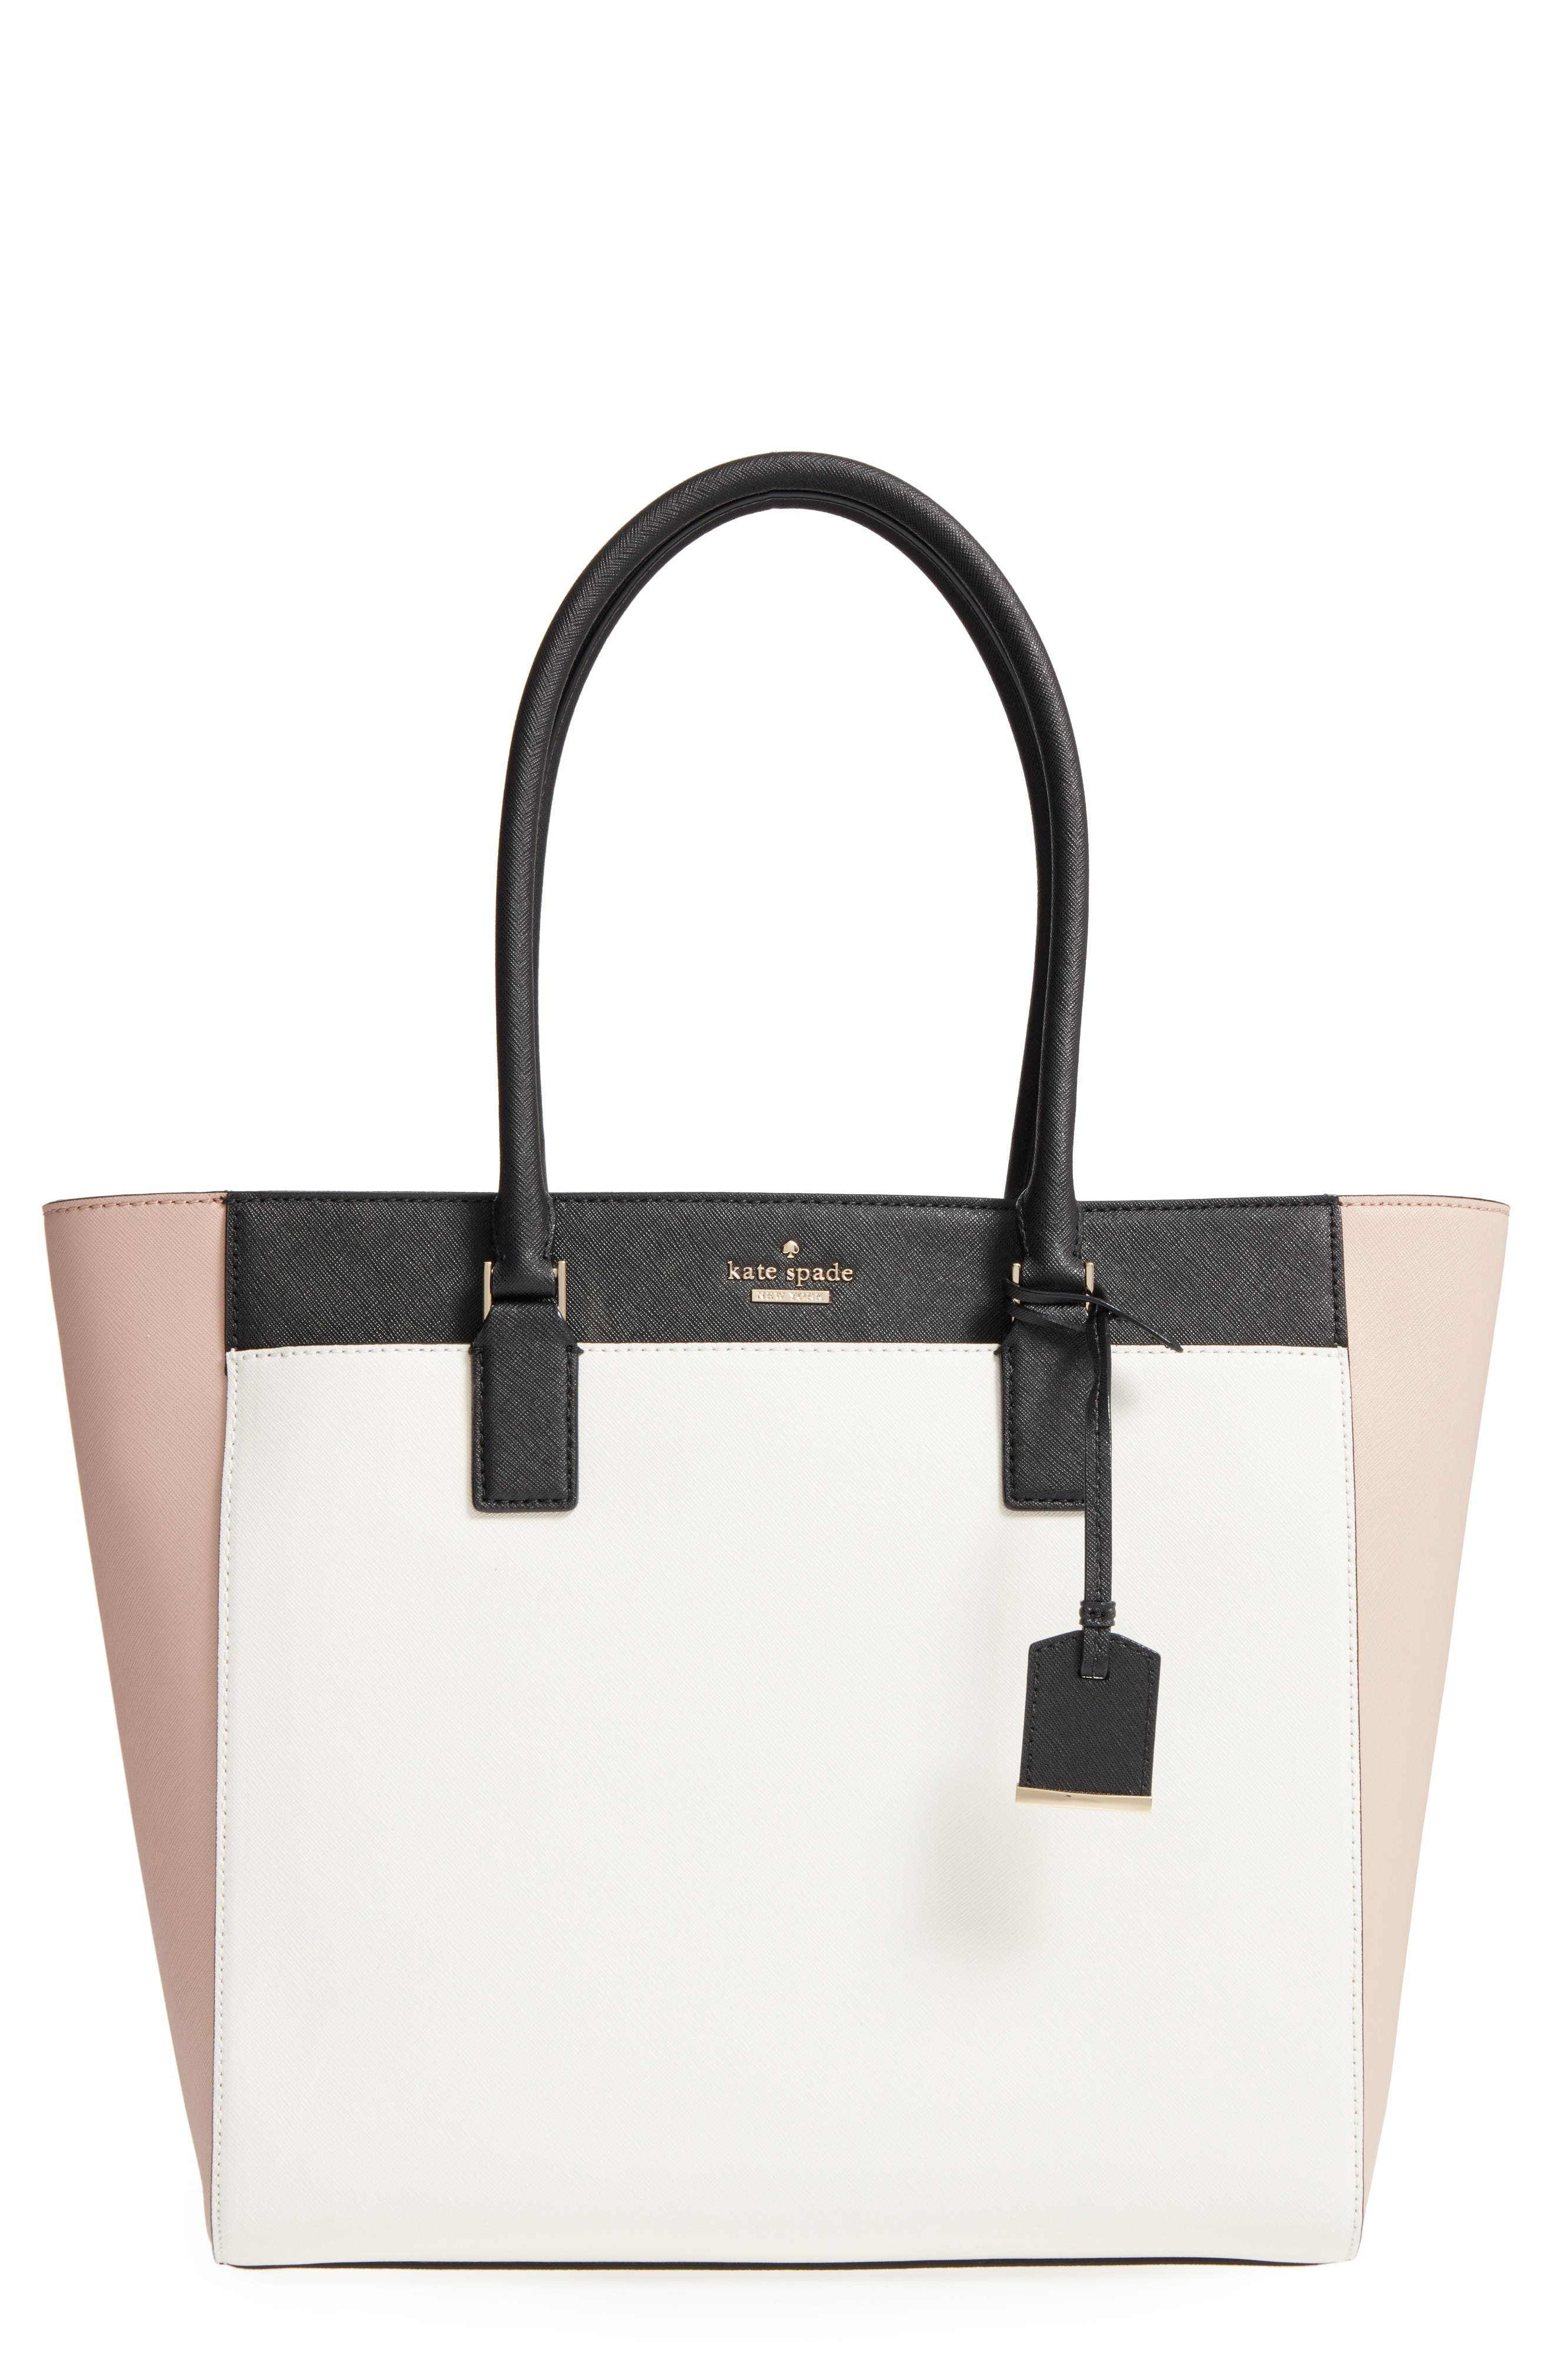 Alternate Image 1 Selected - kate spade new york 'cameron street - havana' textured leather tote